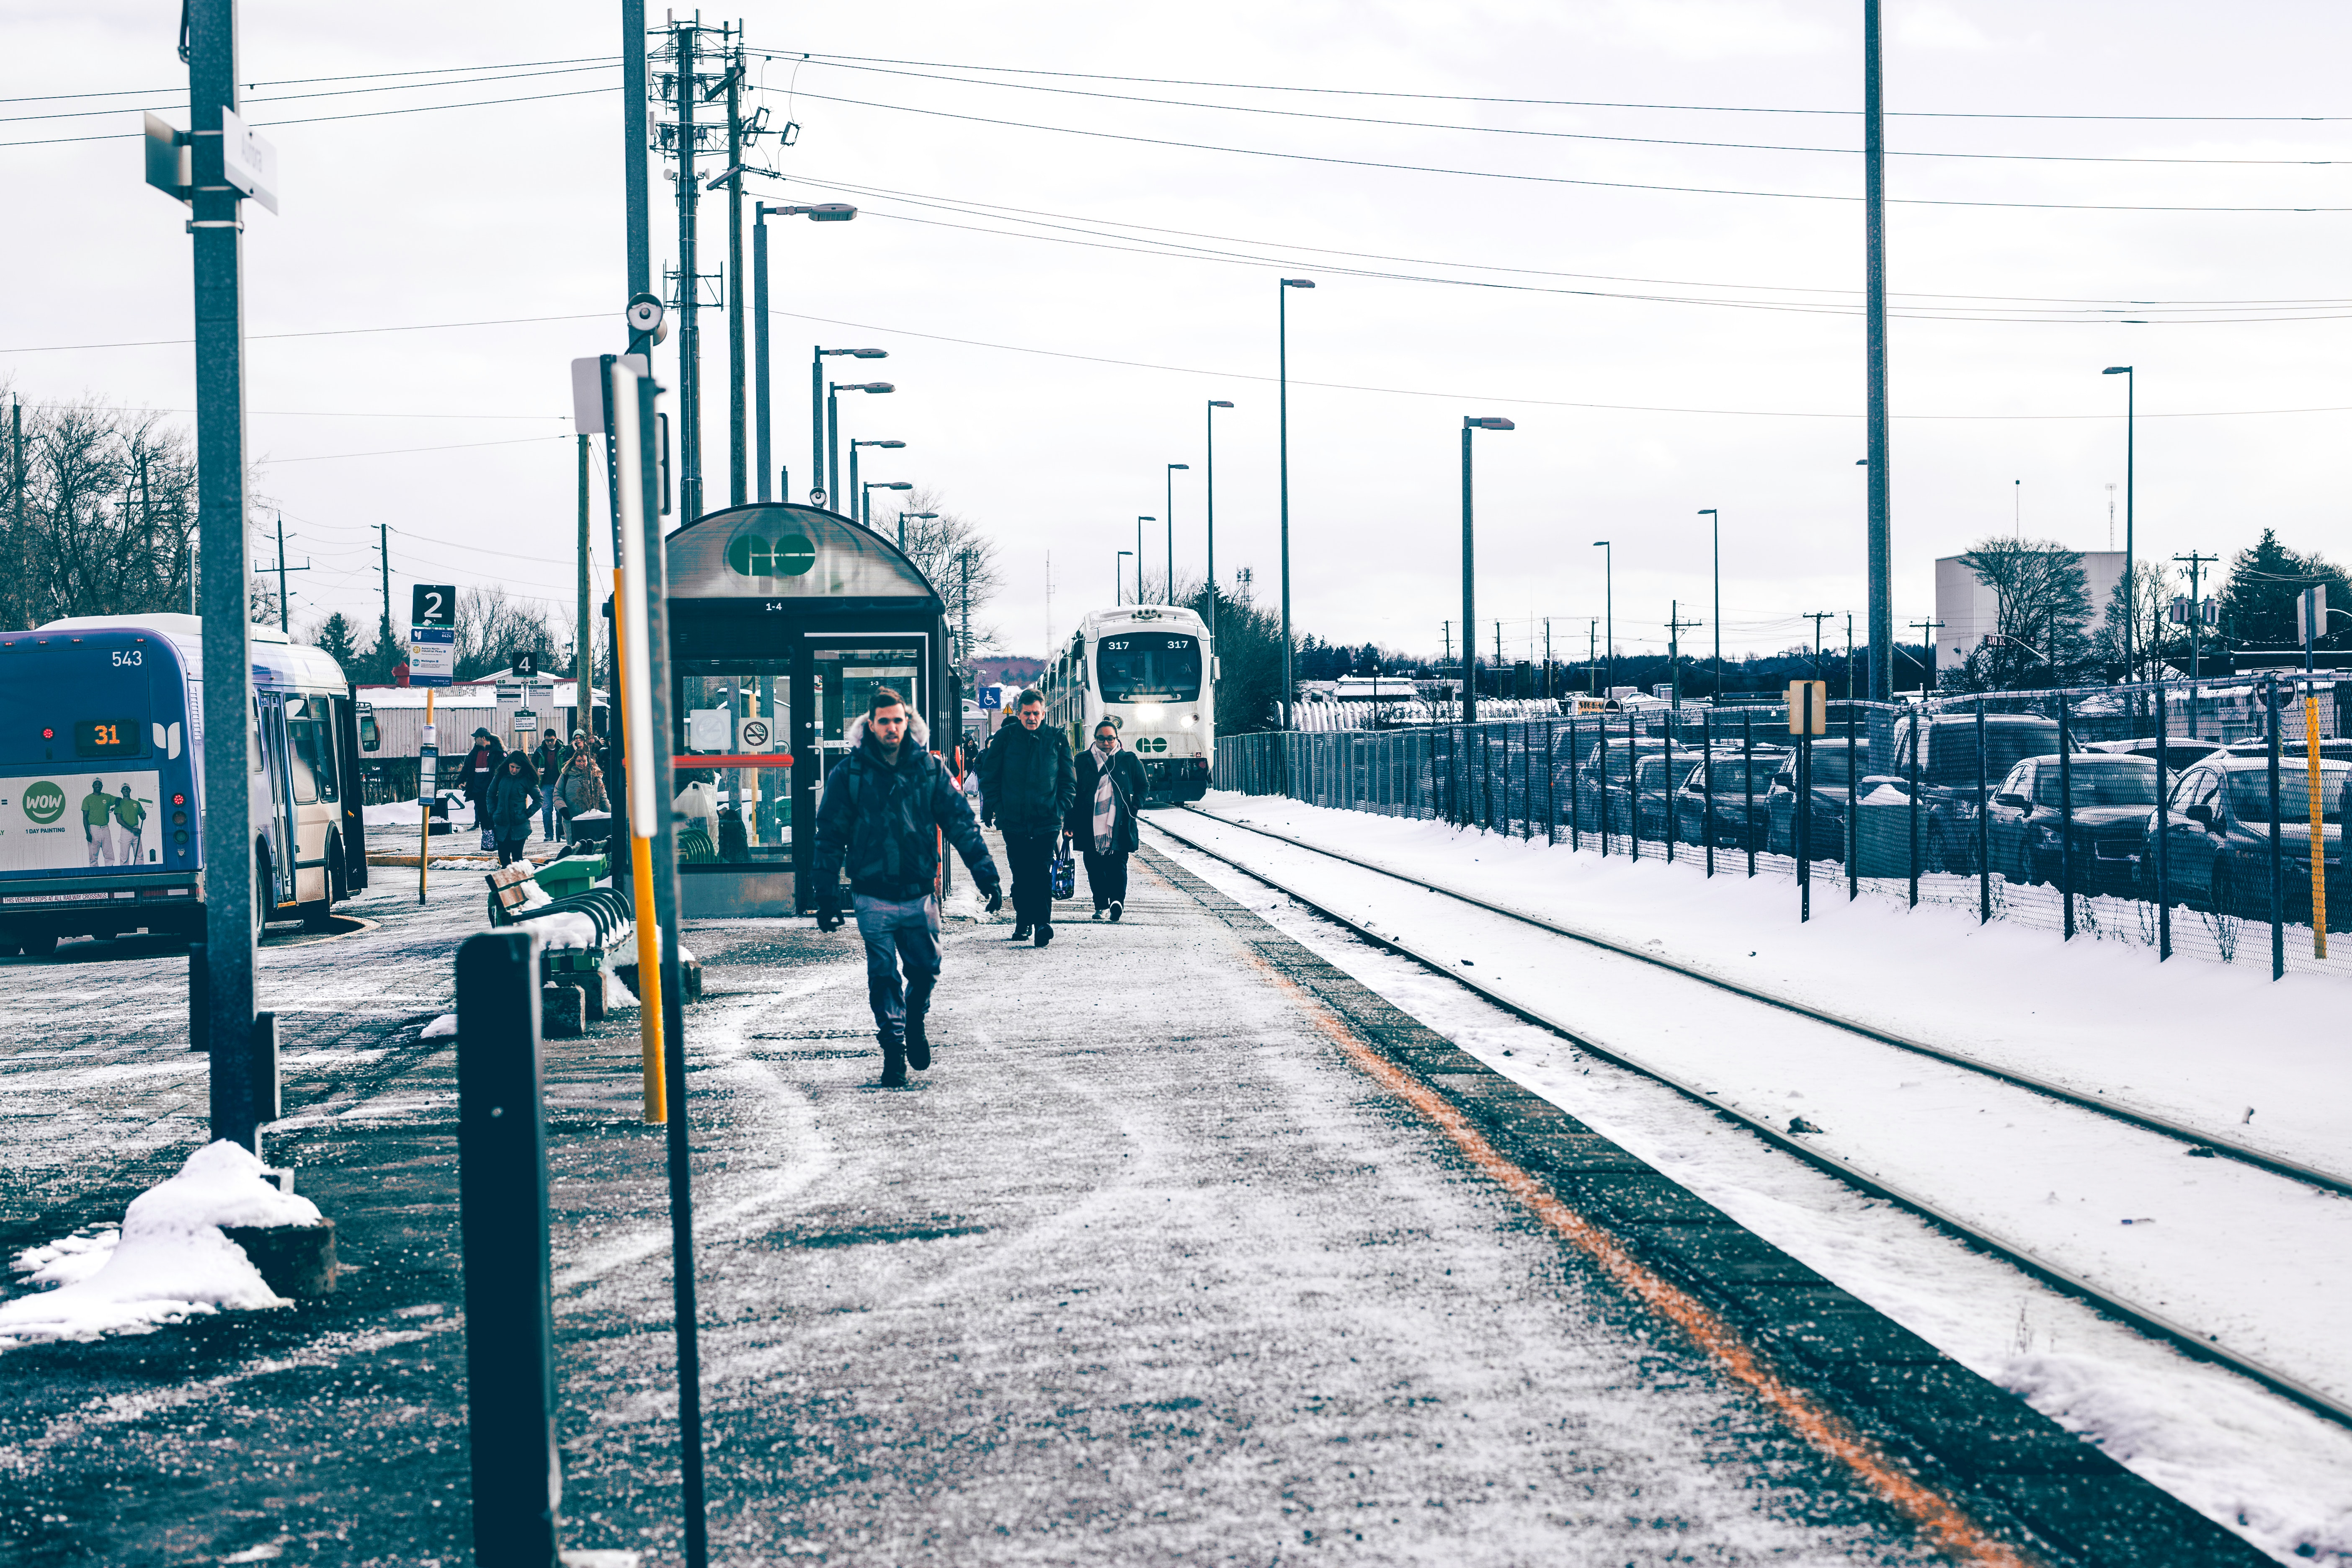 Man Wearing Jacket and Jeans Walking on Road, Architecture, Urban, Transportation system, Train, HQ Photo